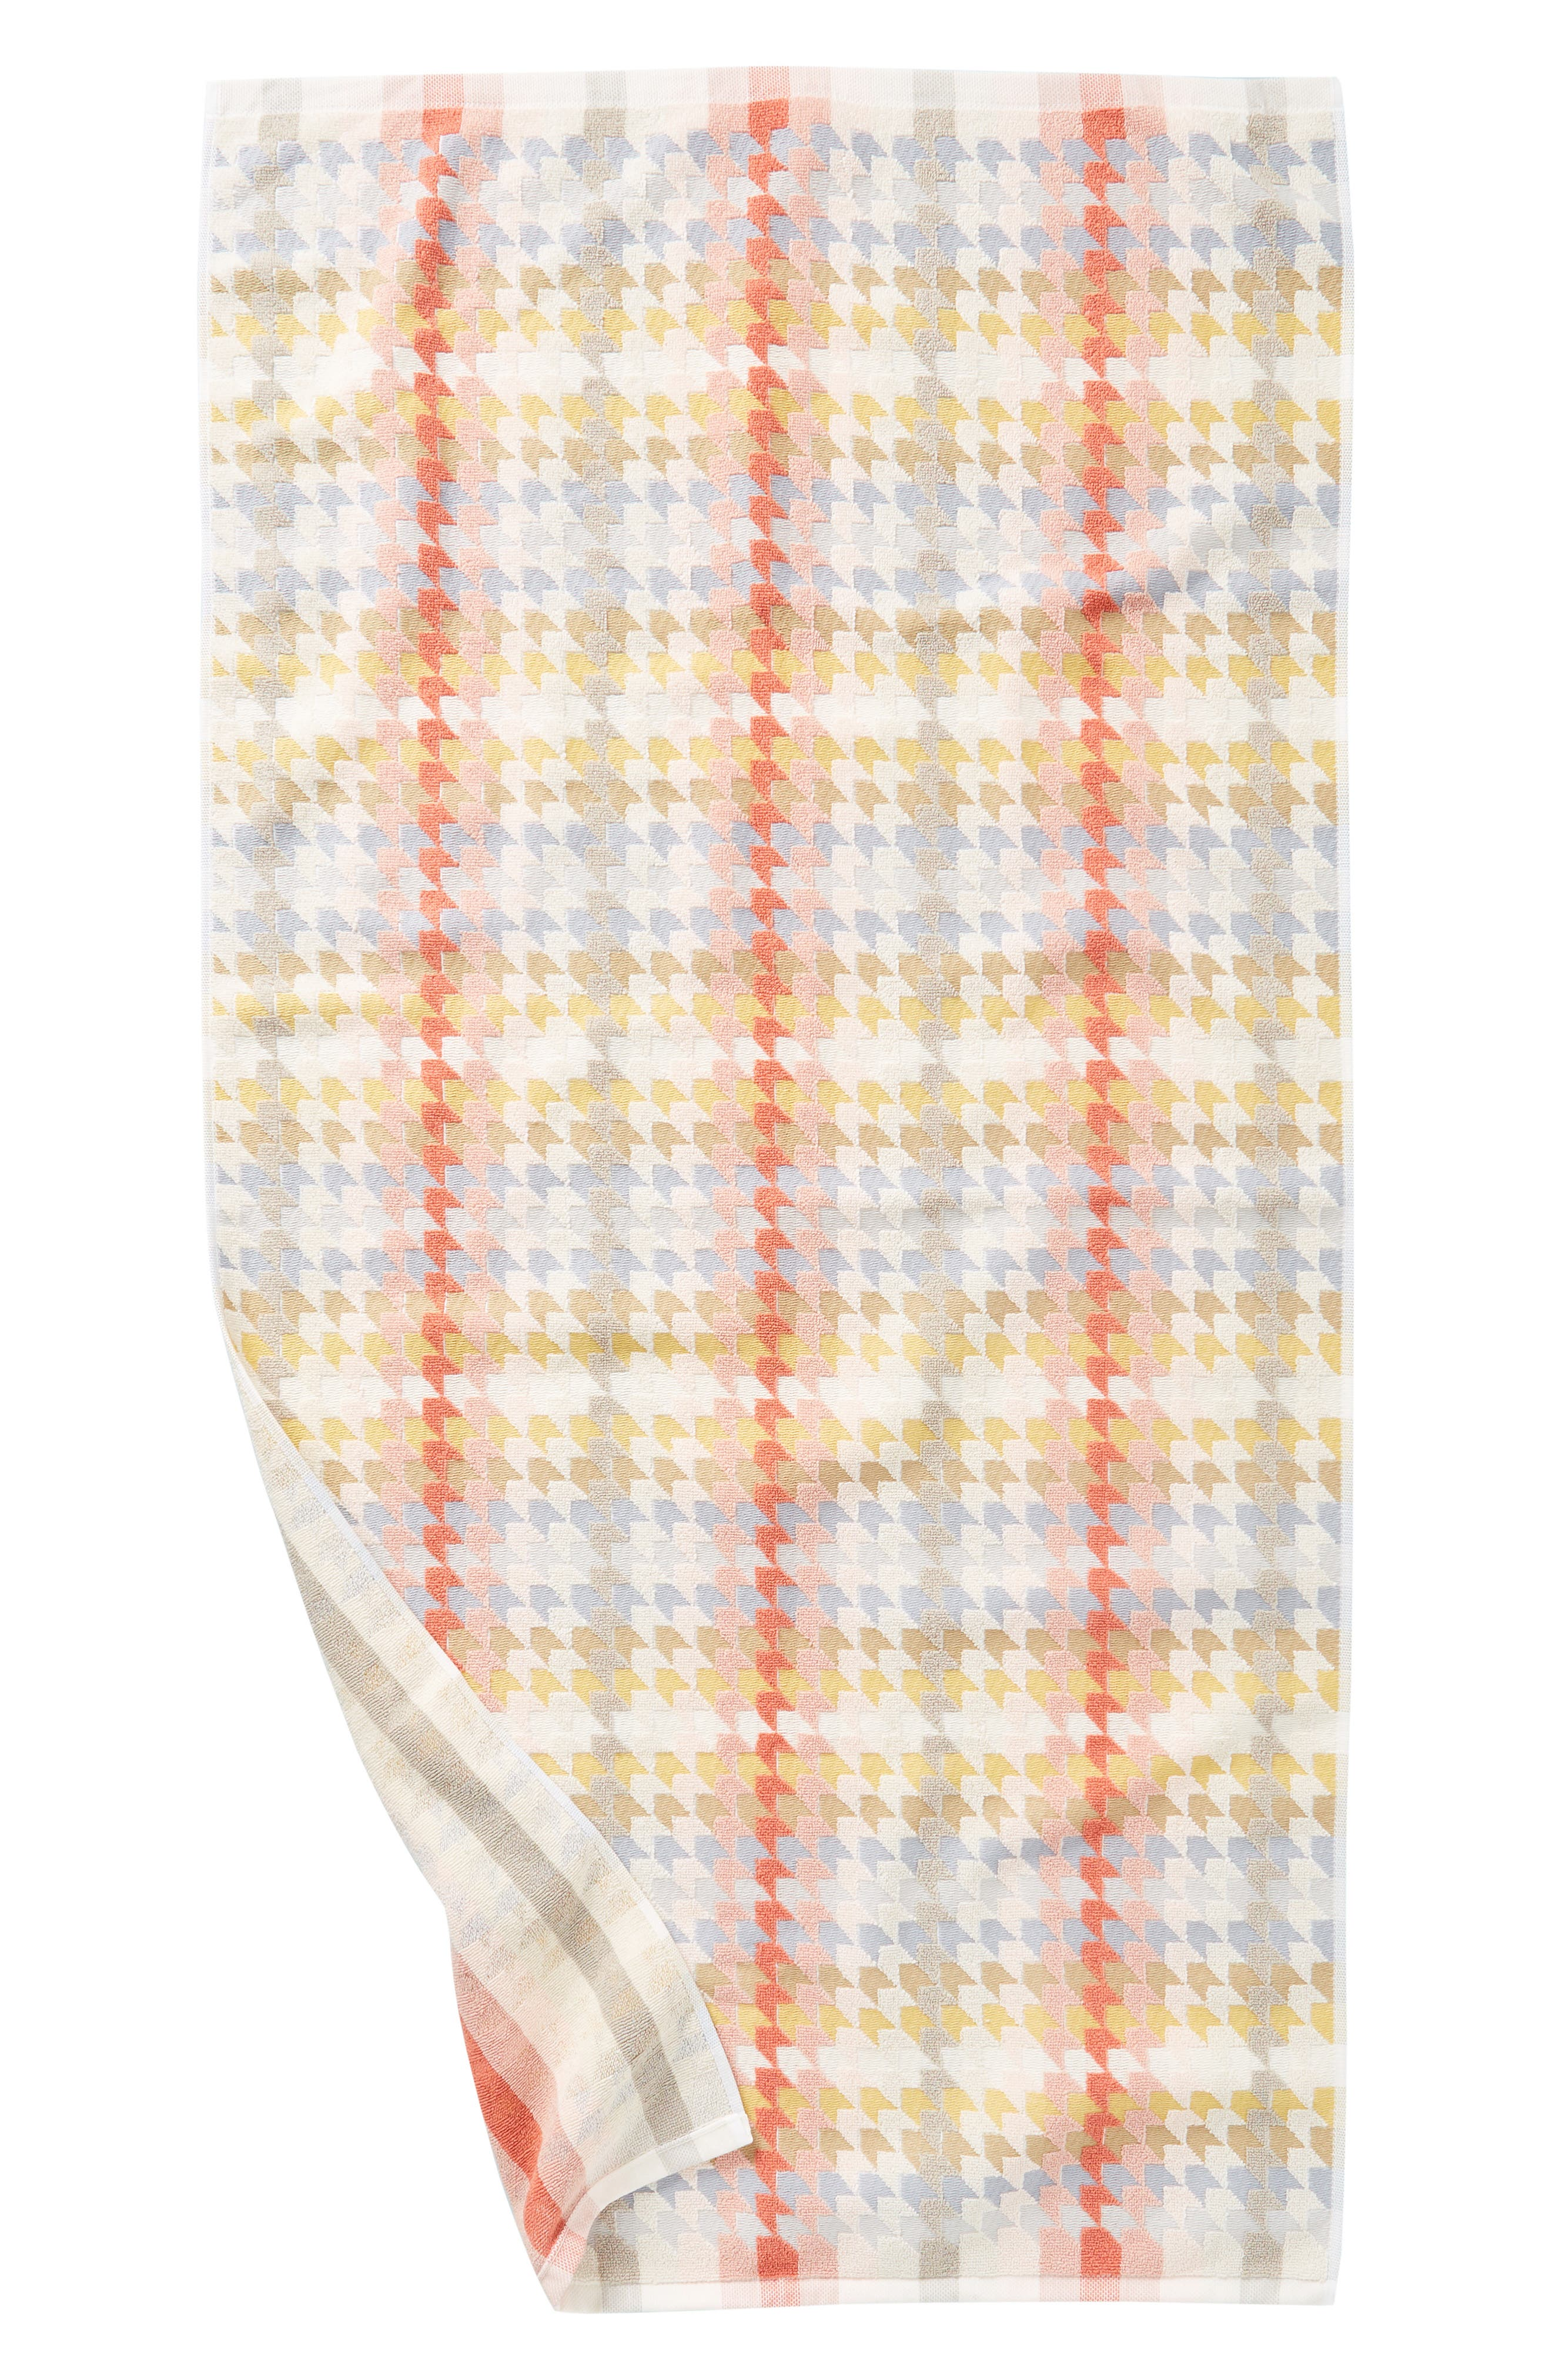 ANTHROPOLOGIE,                             Noella Bath Towel,                             Alternate thumbnail 3, color,                             ORANGE COMBO